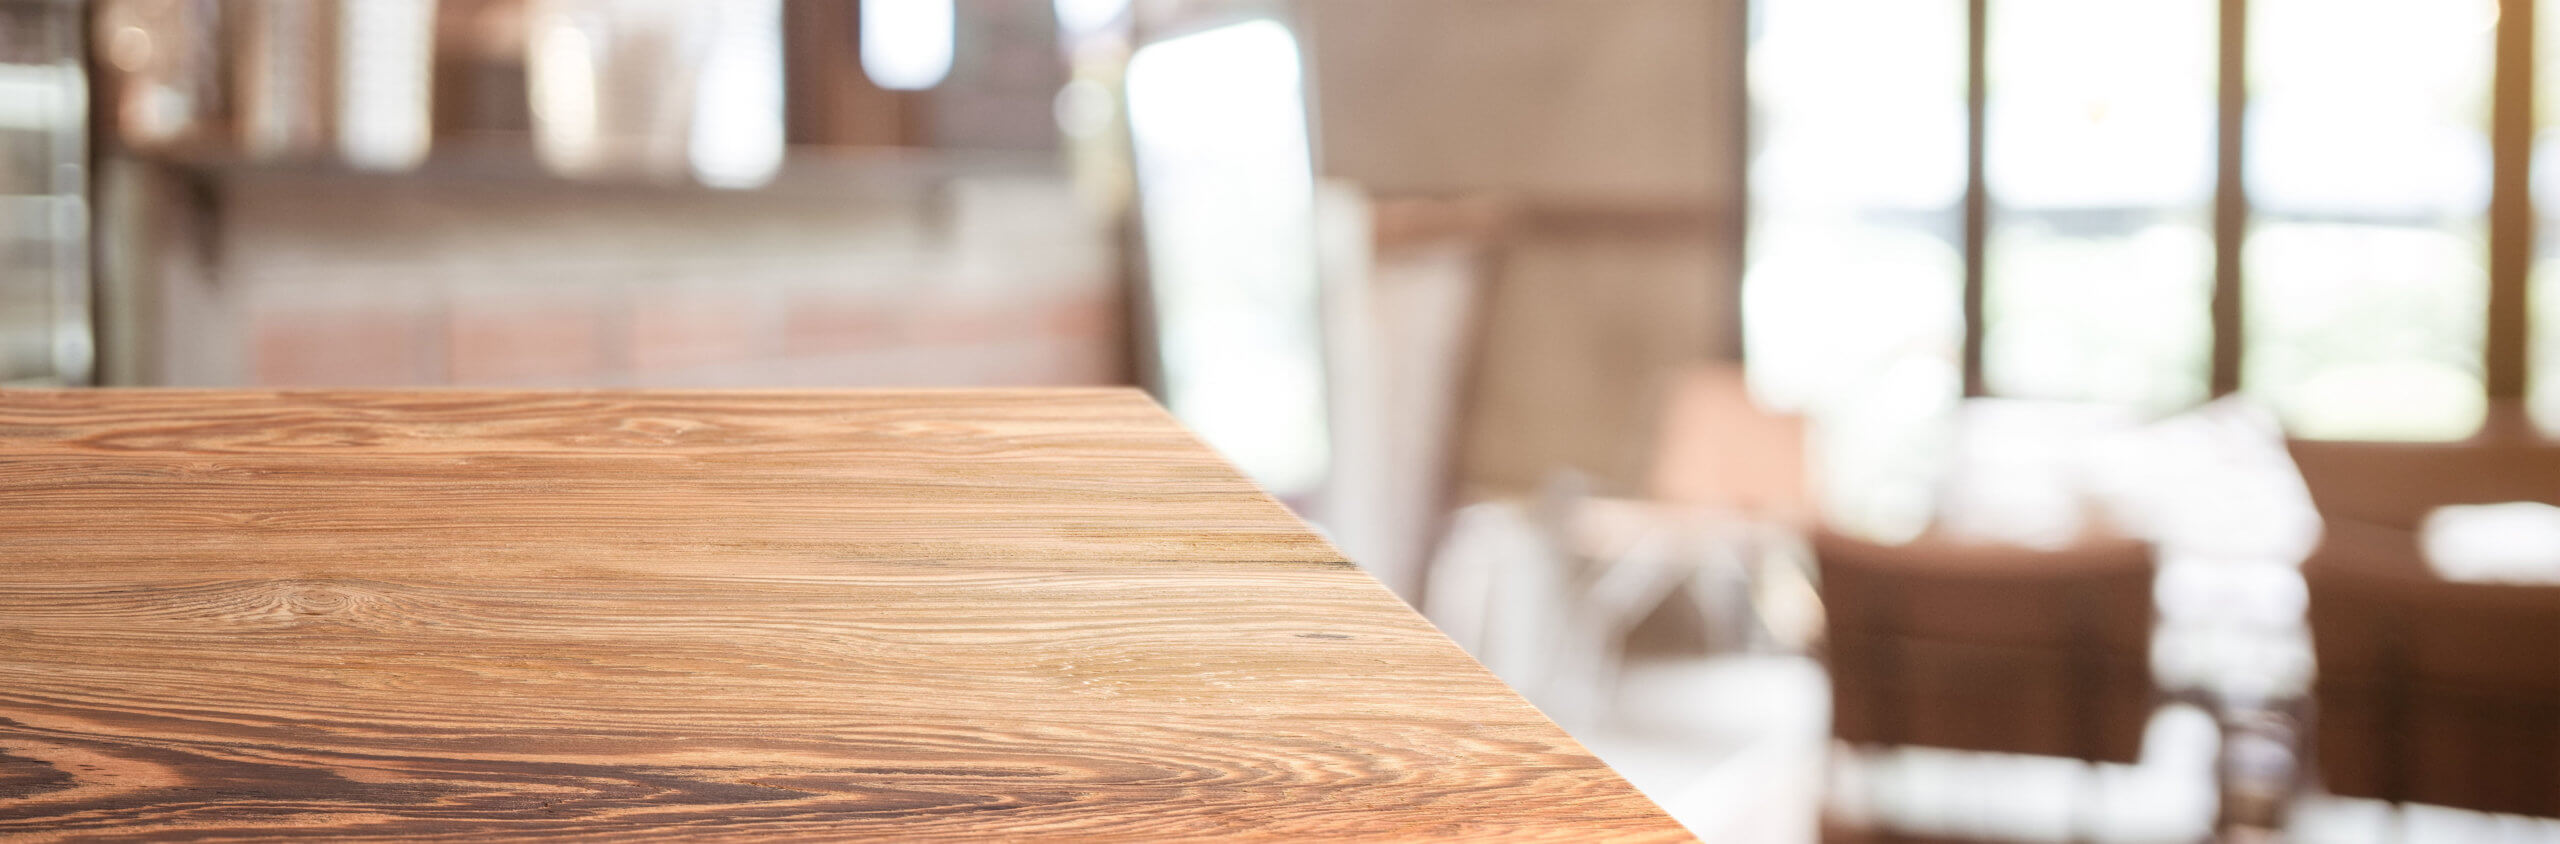 wood table top product display background with blur people in gr